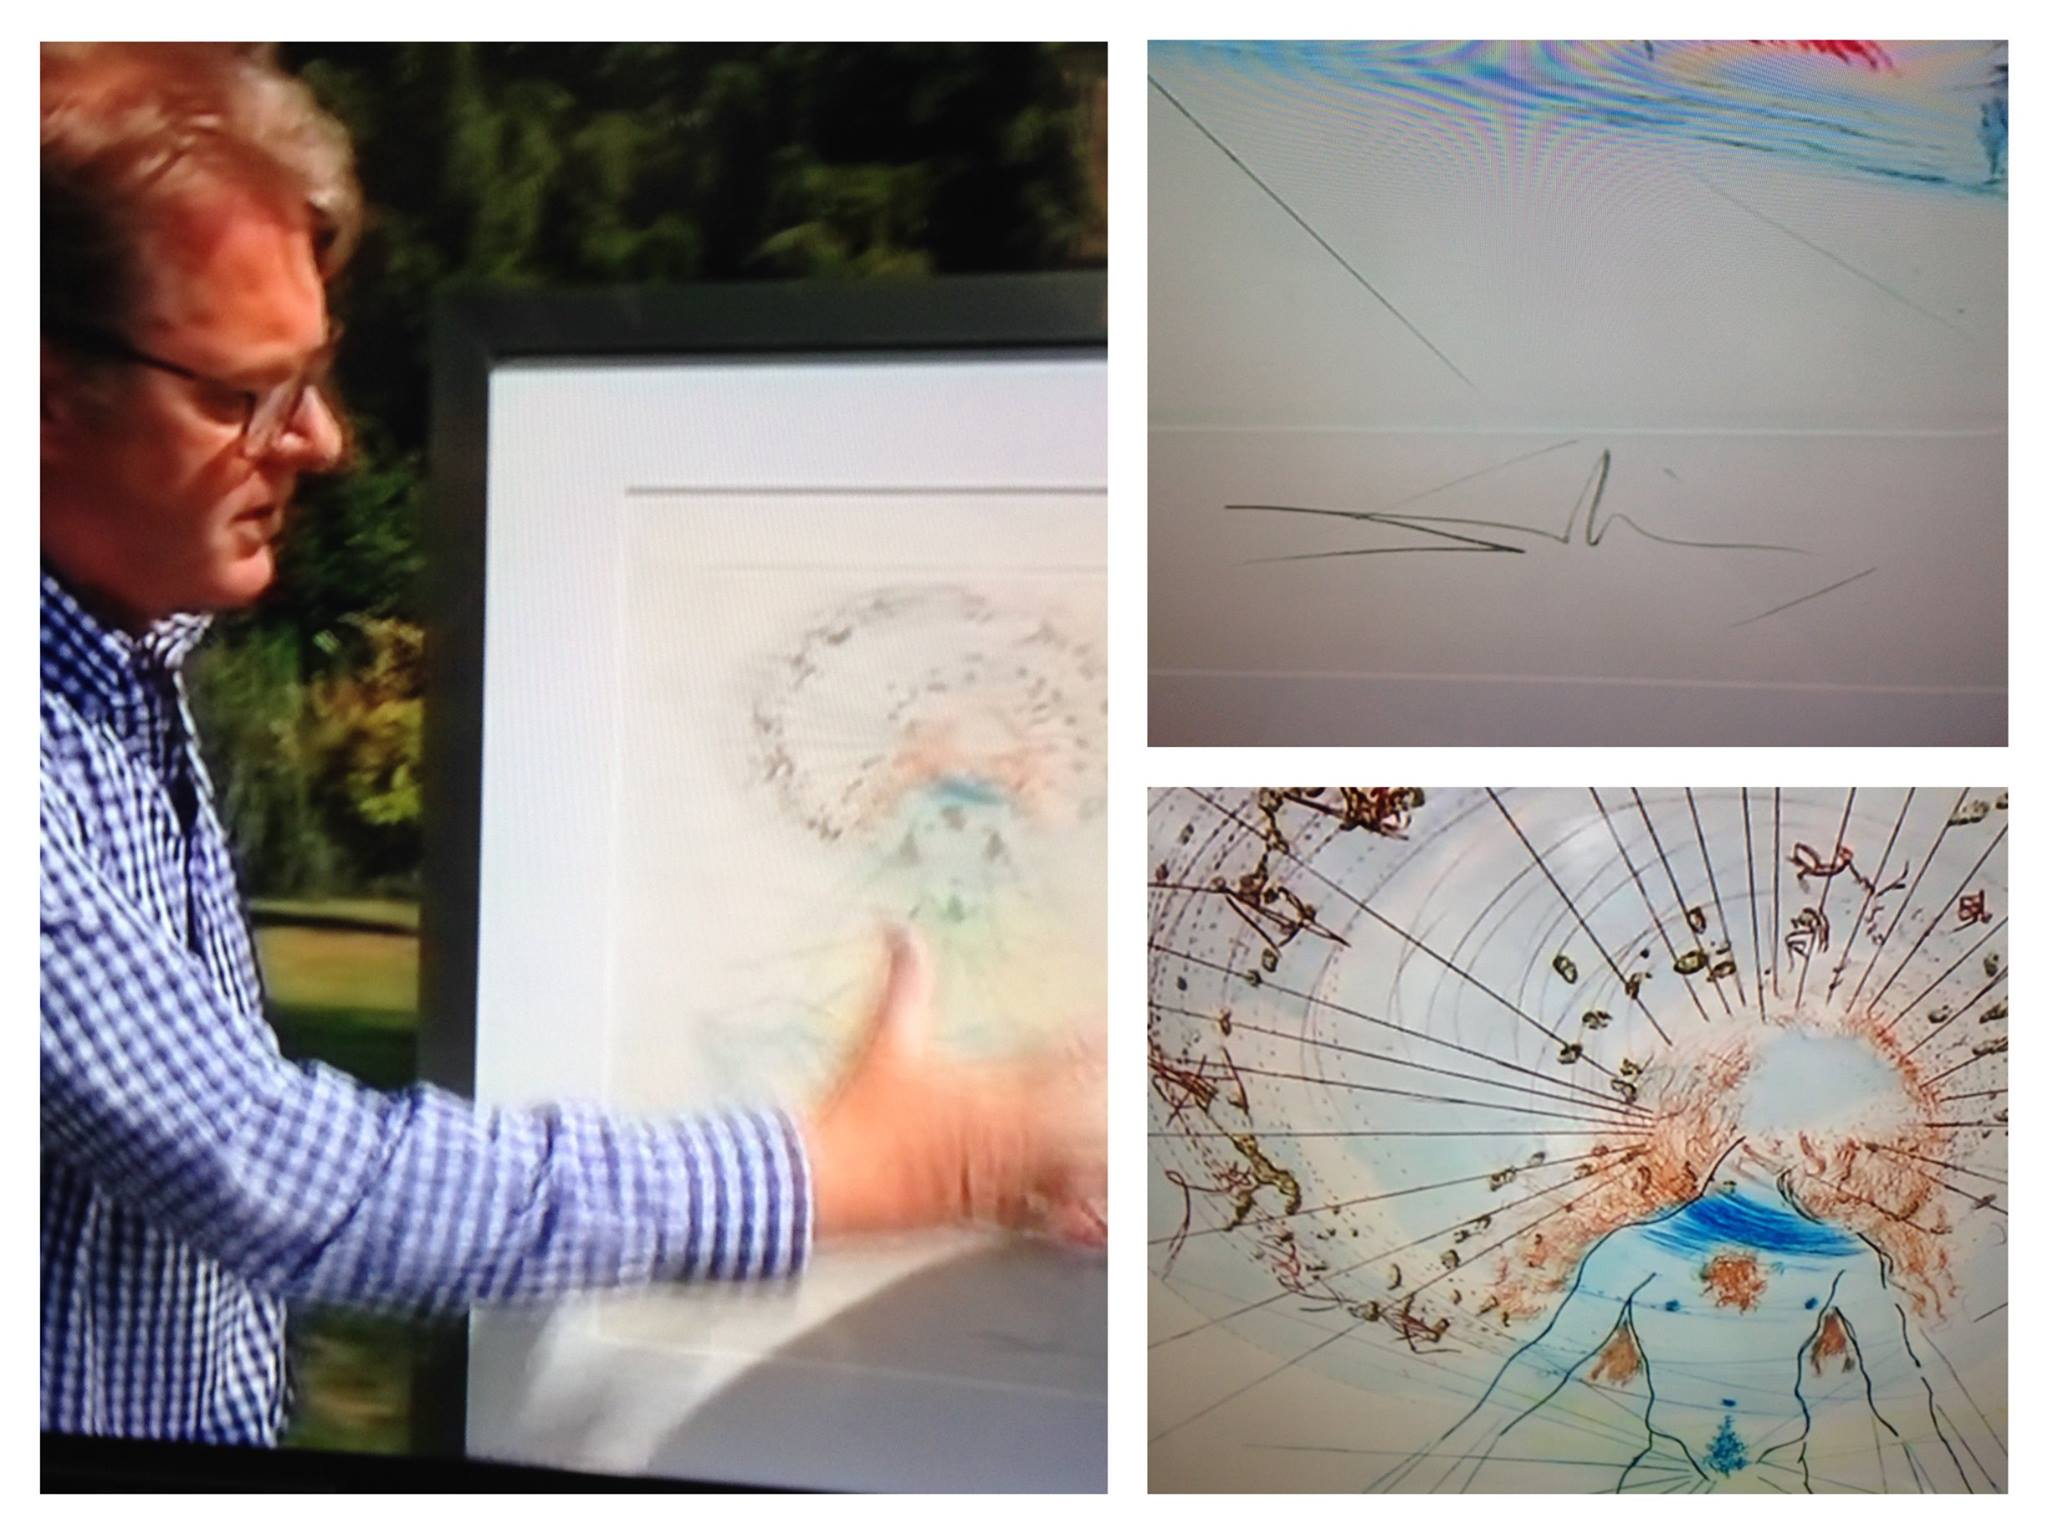 WOW! English antiques expert and television presenter Jonty Hearnden, is selling a stunning Salvador Dali, aptly named 'The Voice of my Beloved' to raise funds for his chosen Charity - Blue Skye Thinking!!! Good luck this week Jonty, as you compete to make the most profit on BBC's 'Put Your Money Where Your Mouth Is' - BBC One. £1754.59 was raised thanks to the genrerosity of local businesses and art enthusiasts.